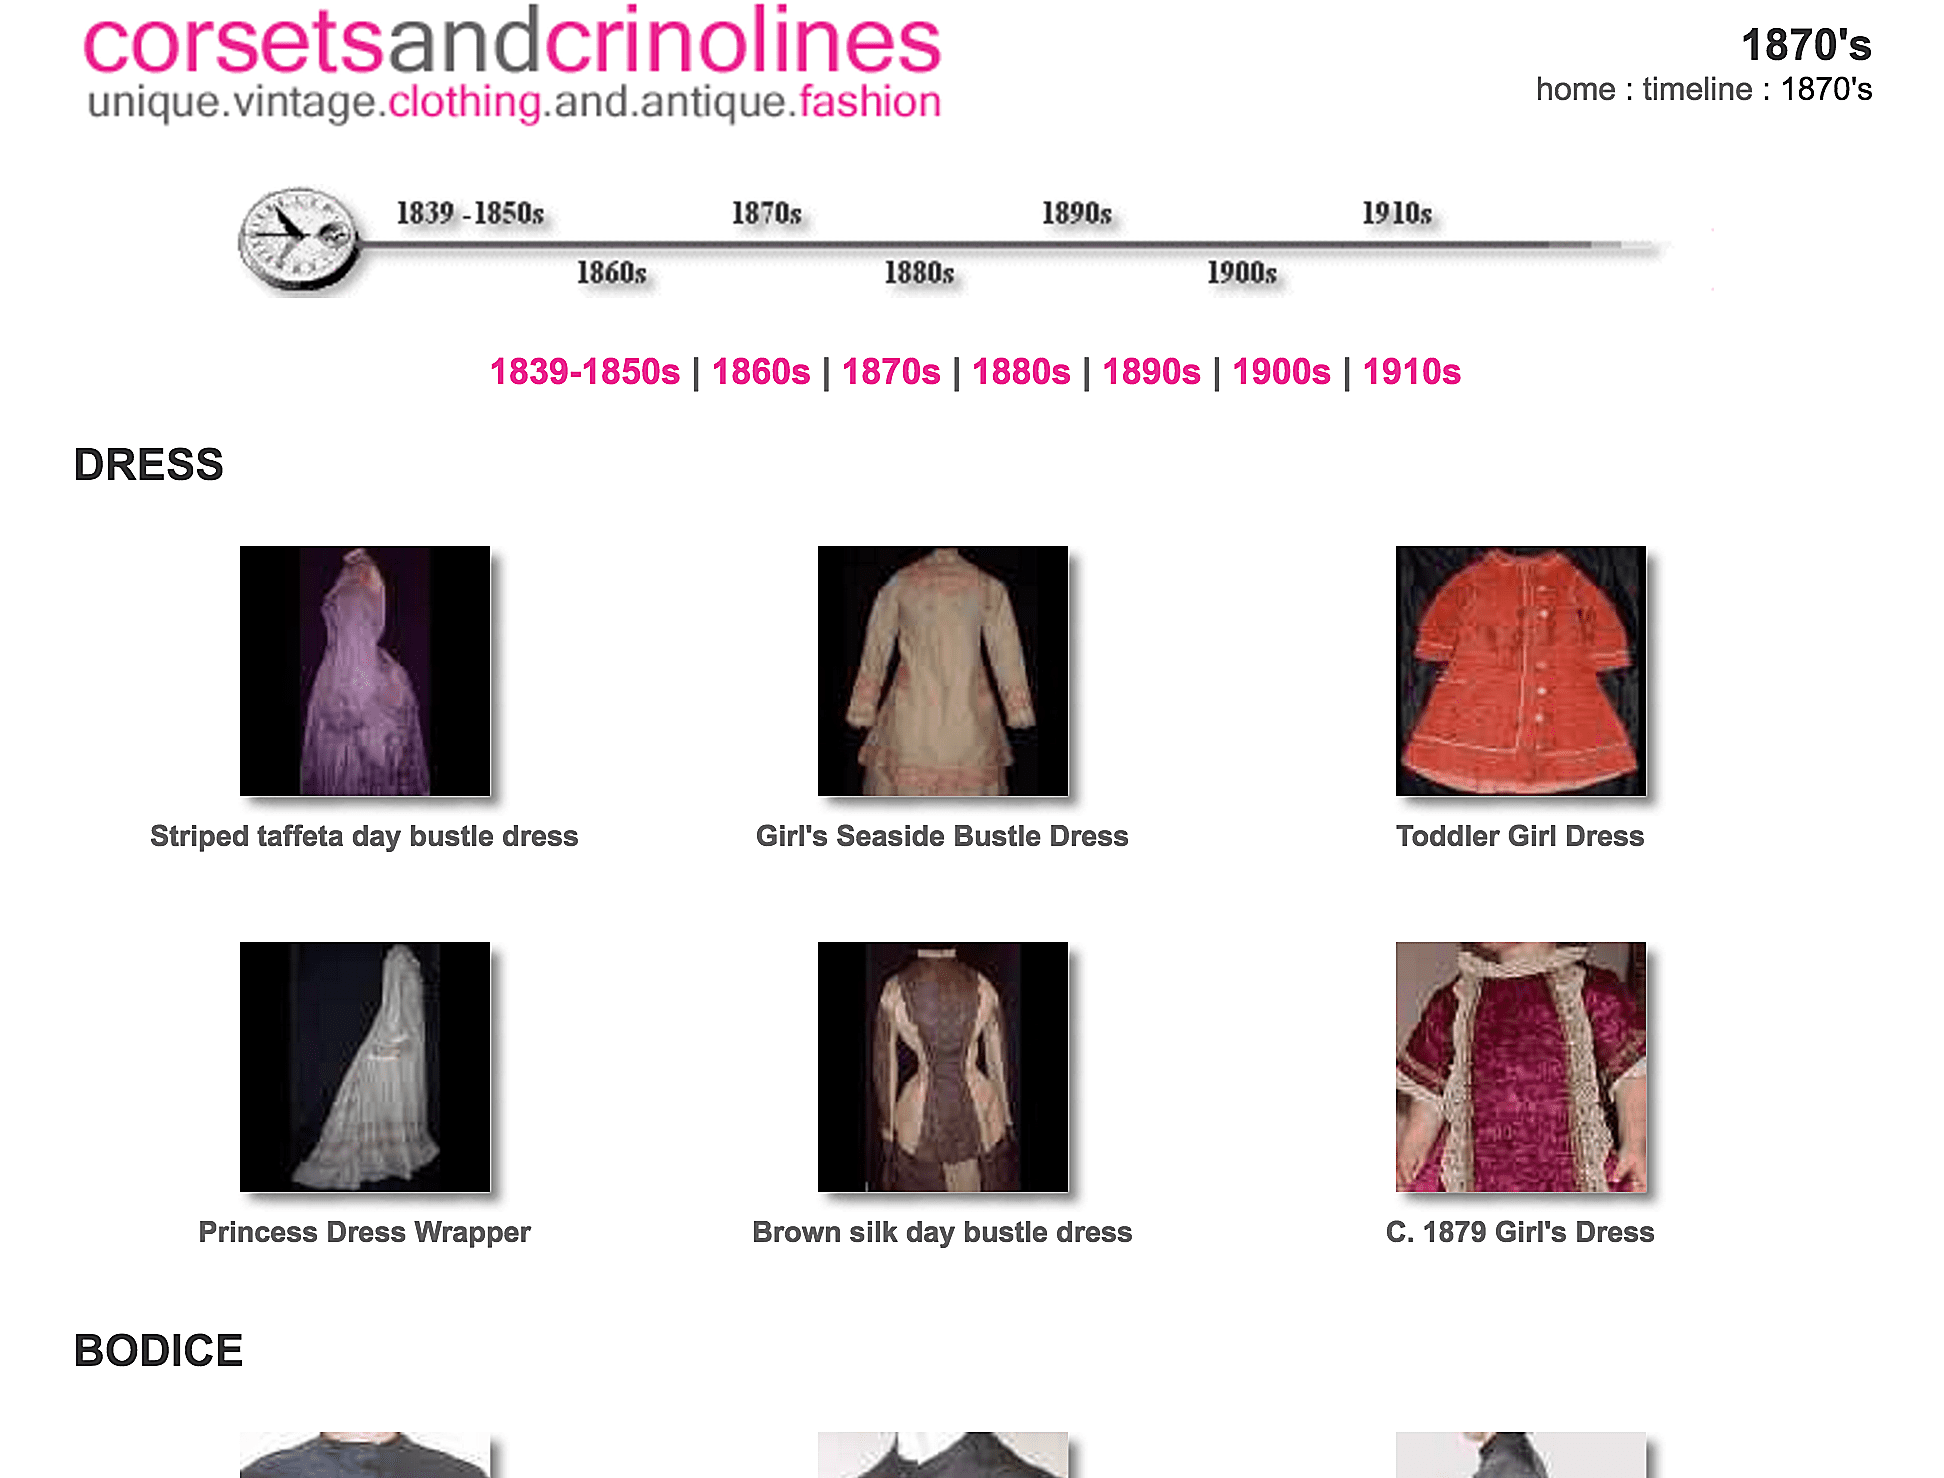 The website Corsets and Crinolines features a fashion timeline of dress, bodices, skirts, outerwear, shoes, hats, underwear and accessories.